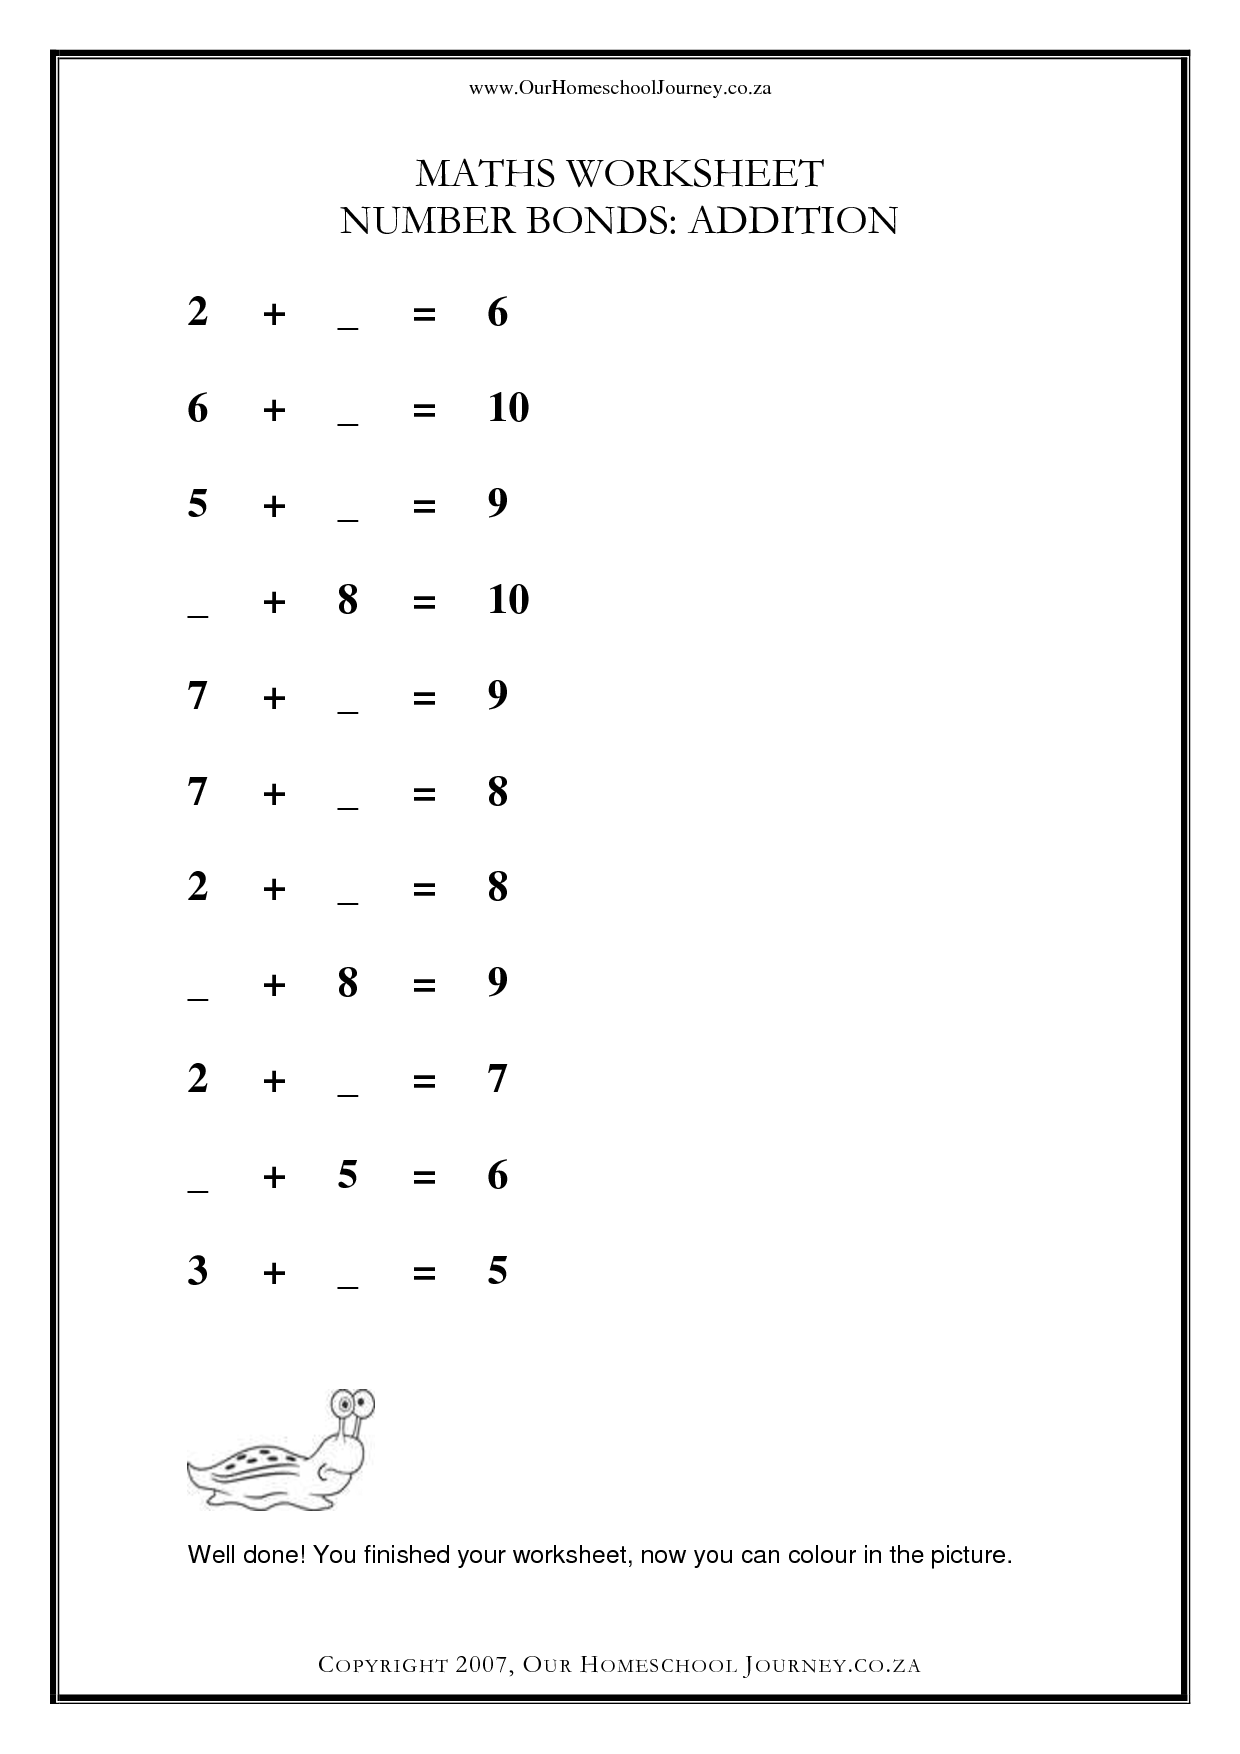 10th graders printable worksheet printable worksheets. Black Bedroom Furniture Sets. Home Design Ideas